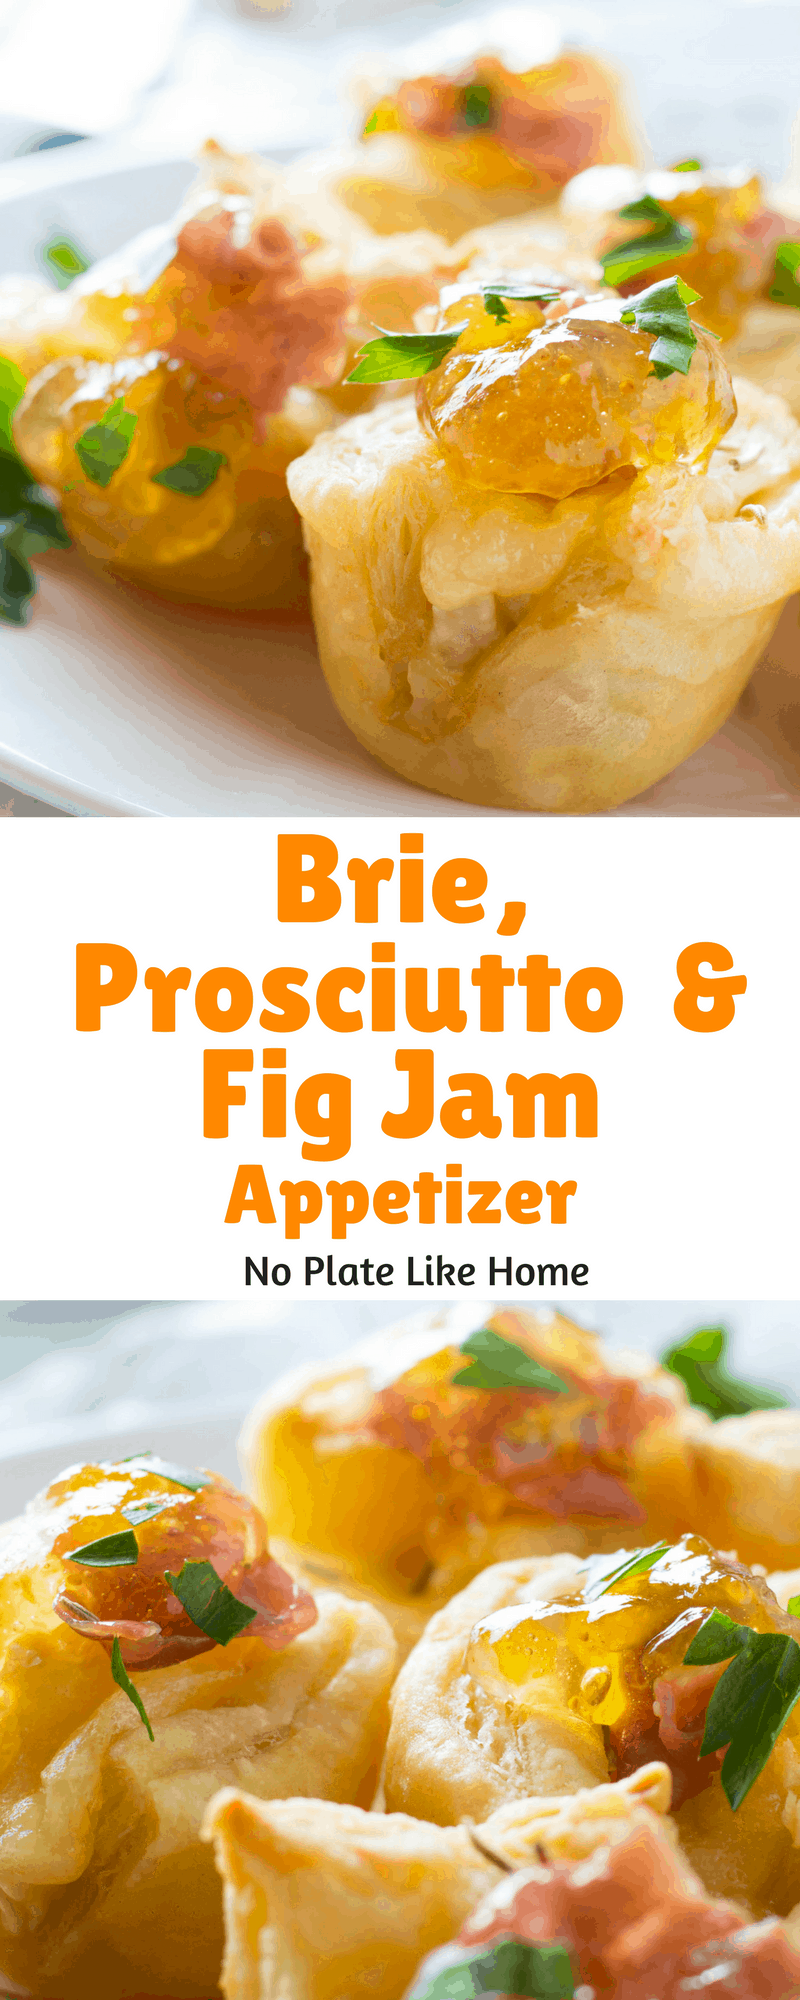 Brie, Prosciutto and Fig Jam Appetizer is an easy-to-make hot hors d'oeuvres with little prep and no cutting up veggies or mixing. This is a tasty puff pastry appetizer!